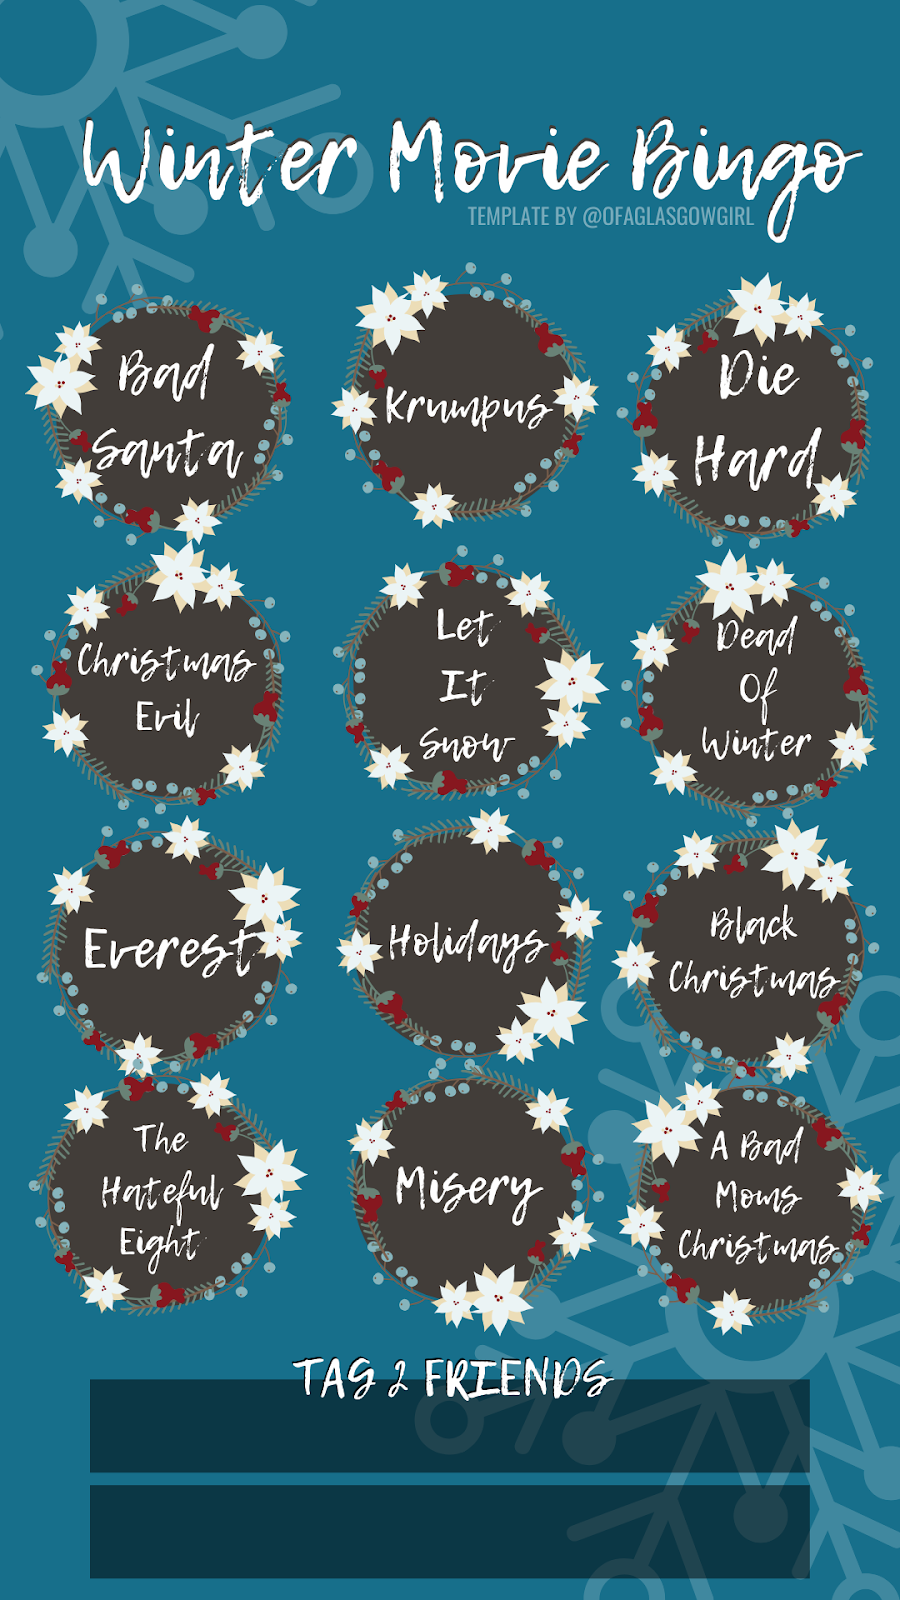 Winter movie bingo printable that can be used to track films you have watched or can be used as an instagram story template for playing movie bingo